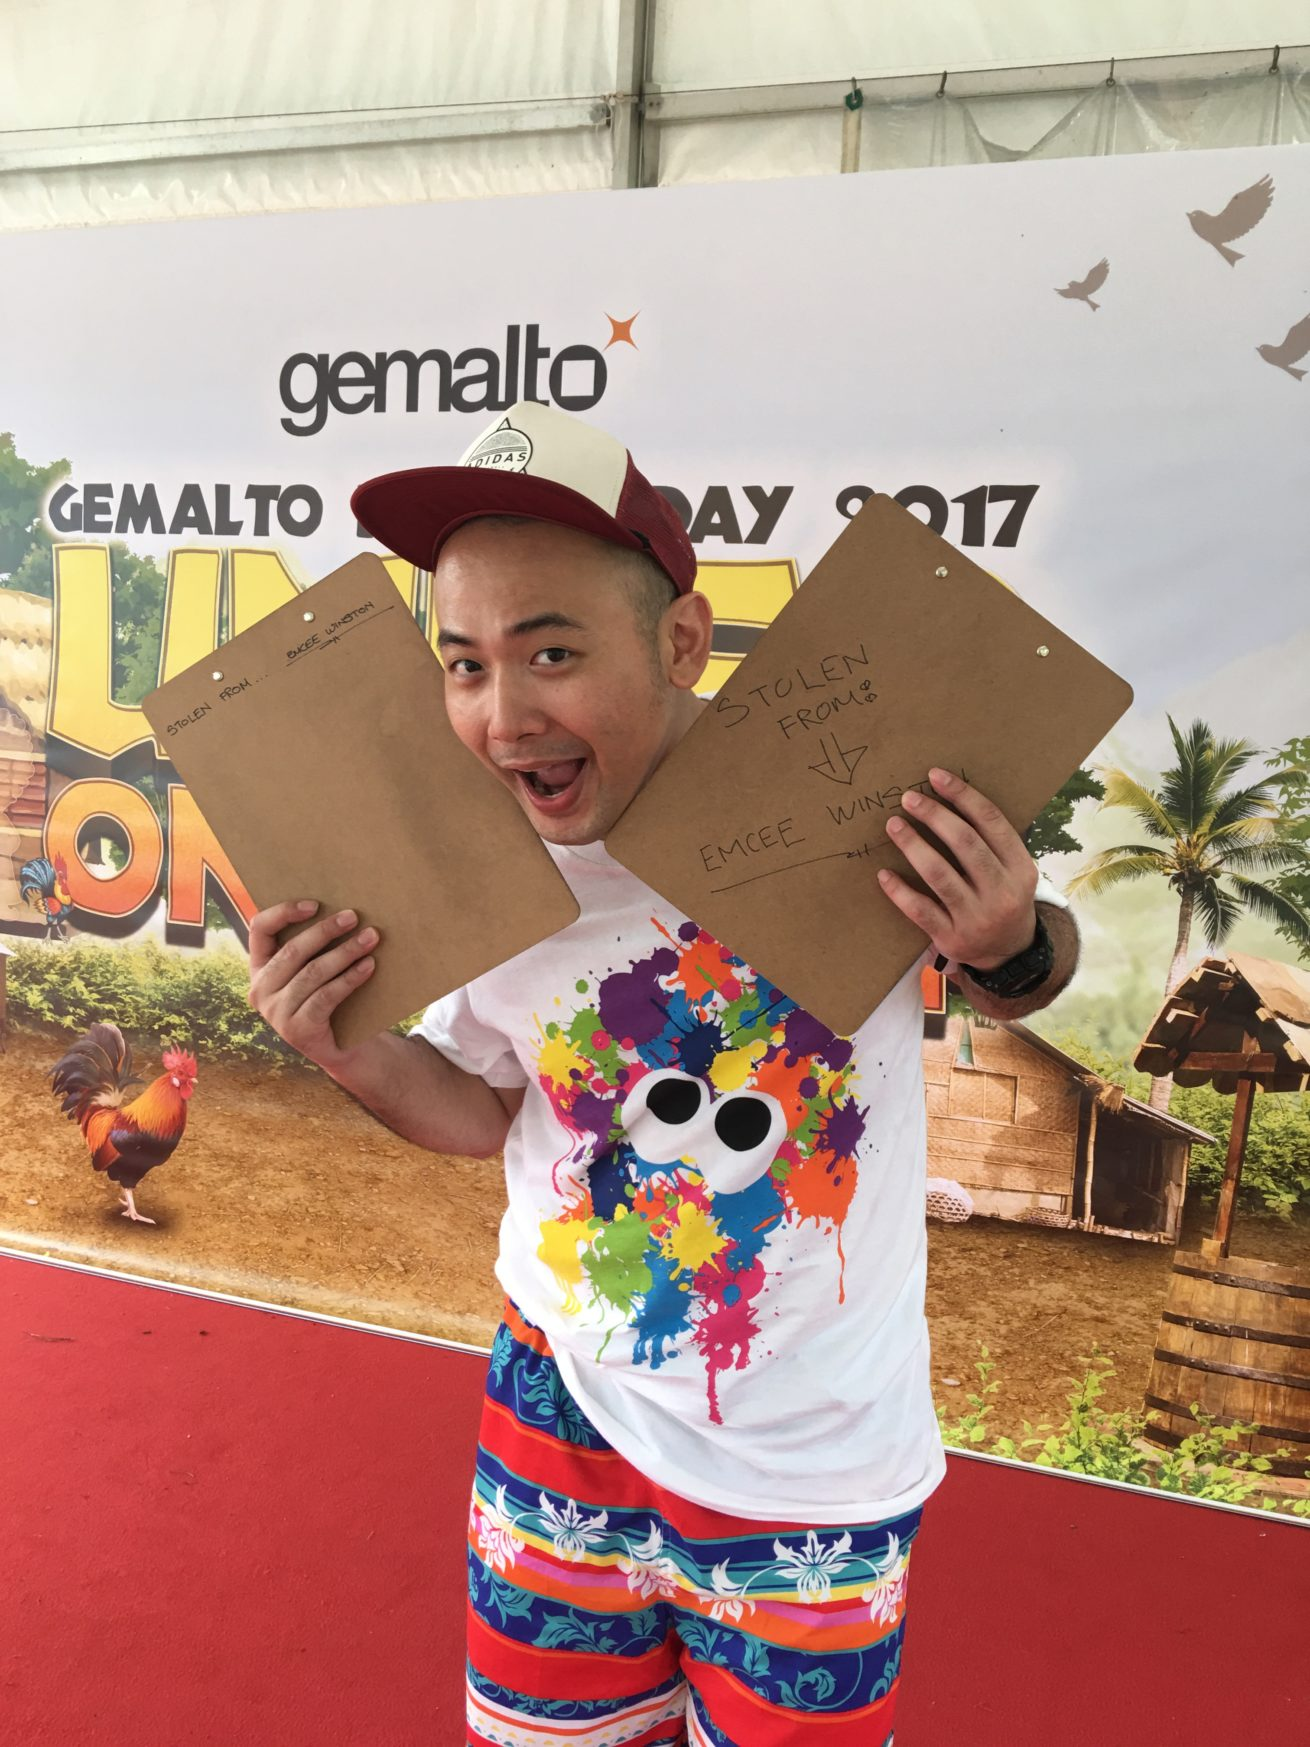 Best carnival emcee in Singapore - Winston Wei getting ready for some fun with the people from Gemalto - one of the global leaders in the field of digital security. To better understand Gemalto, check out https://www.gemalto.com/